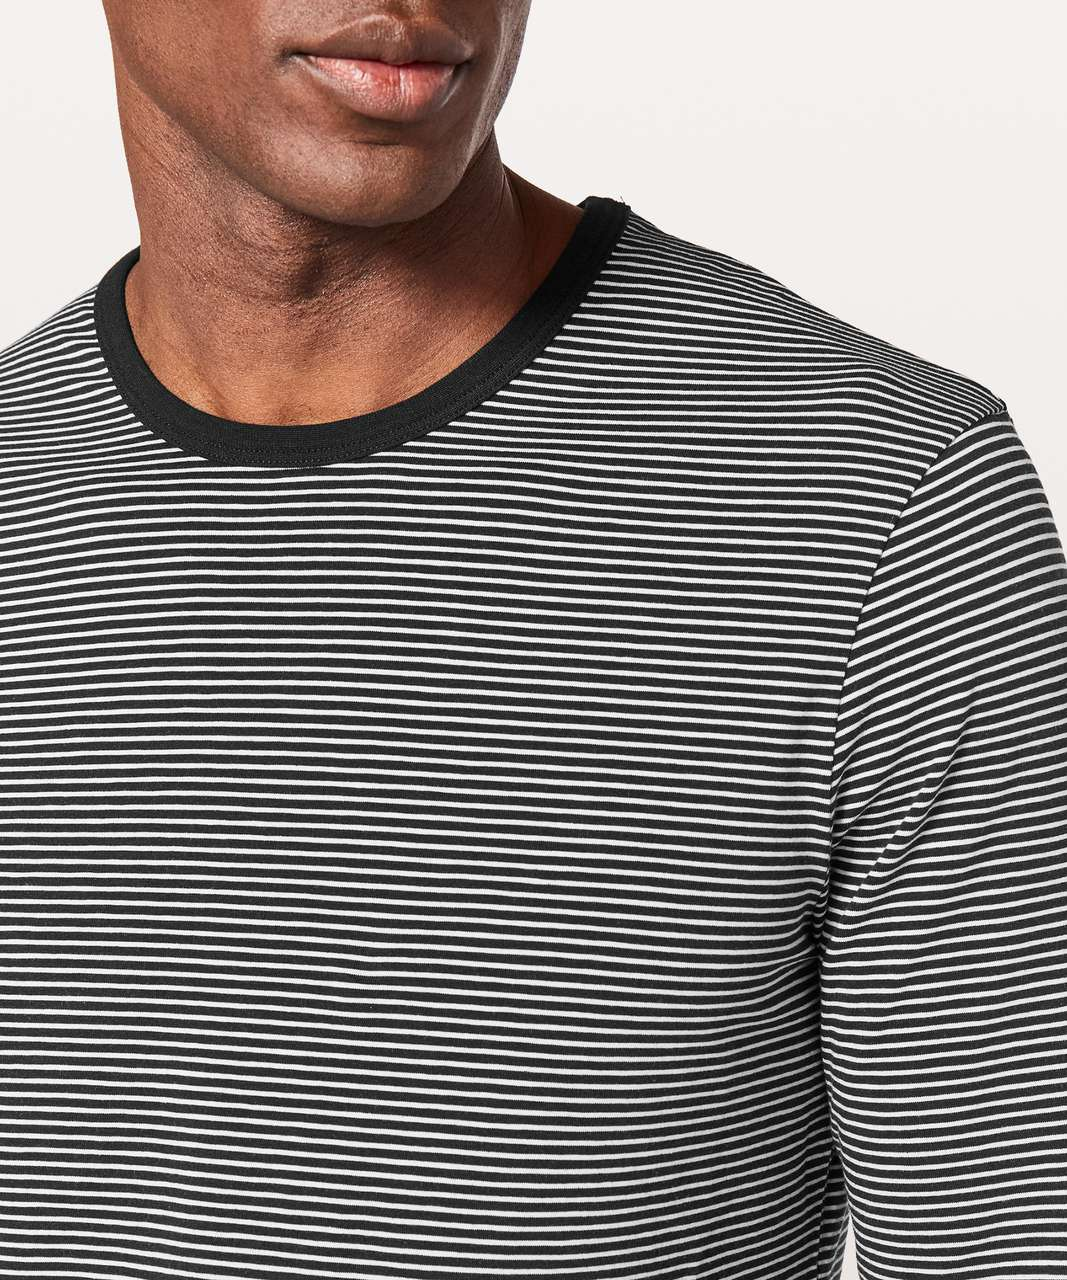 Lululemon 5 Year Basic Long Sleeve - Hyper Stripe Black / White